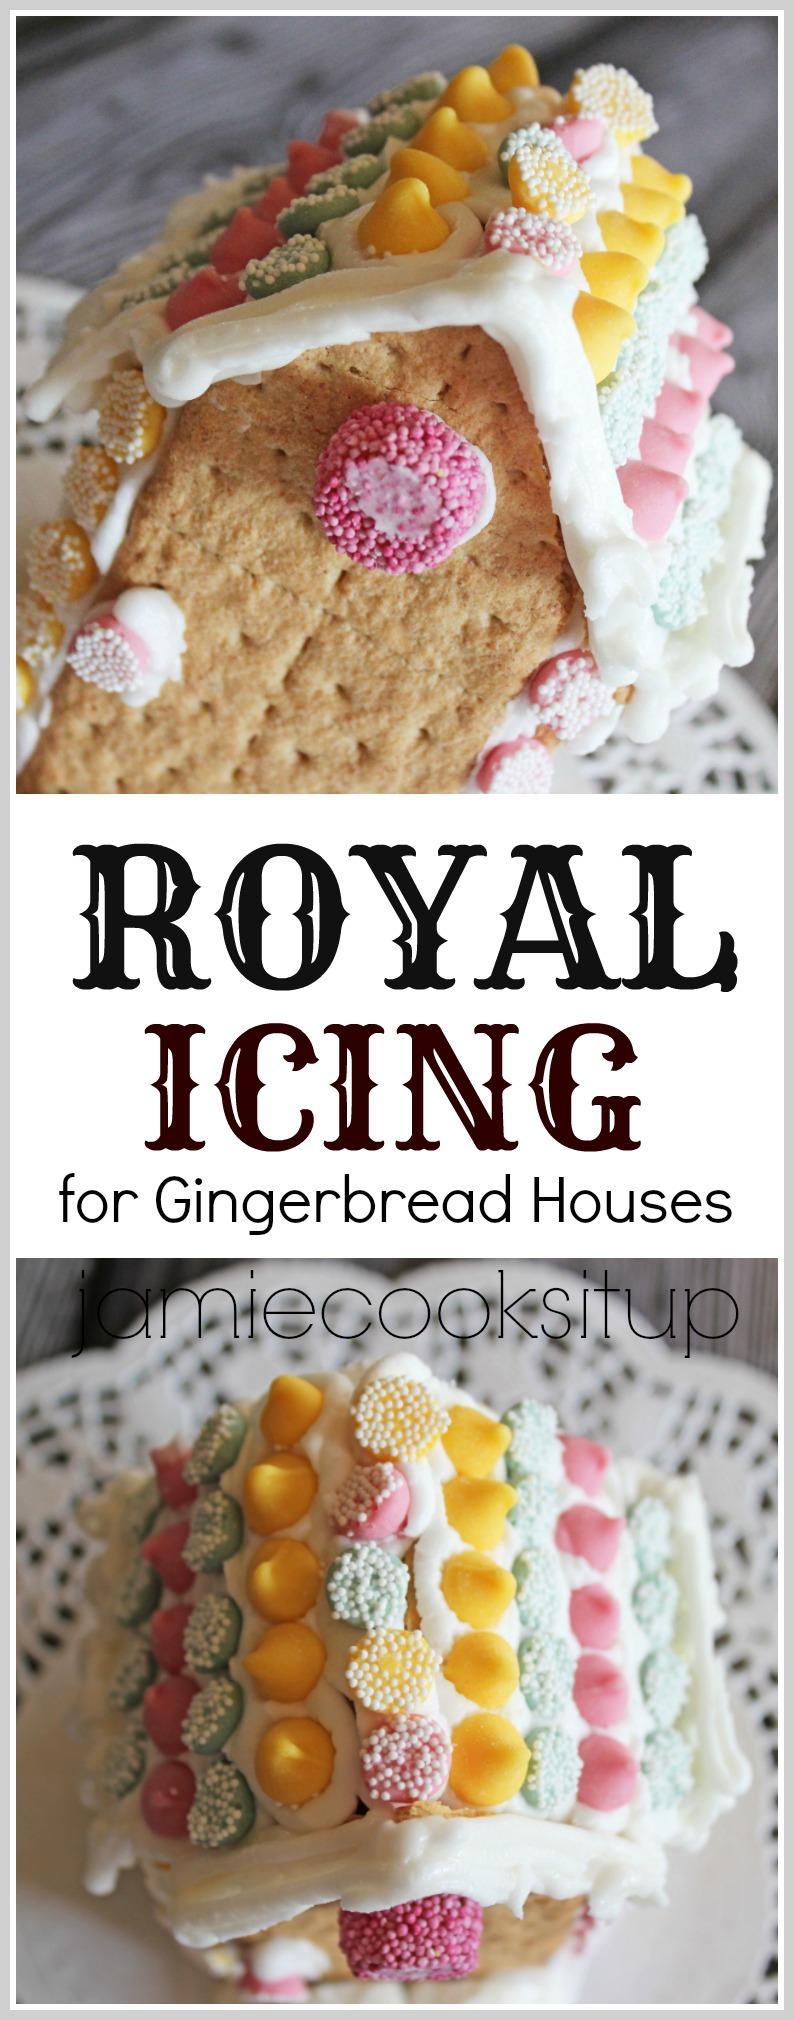 royal-icing-from-jamie-cooks-it-up